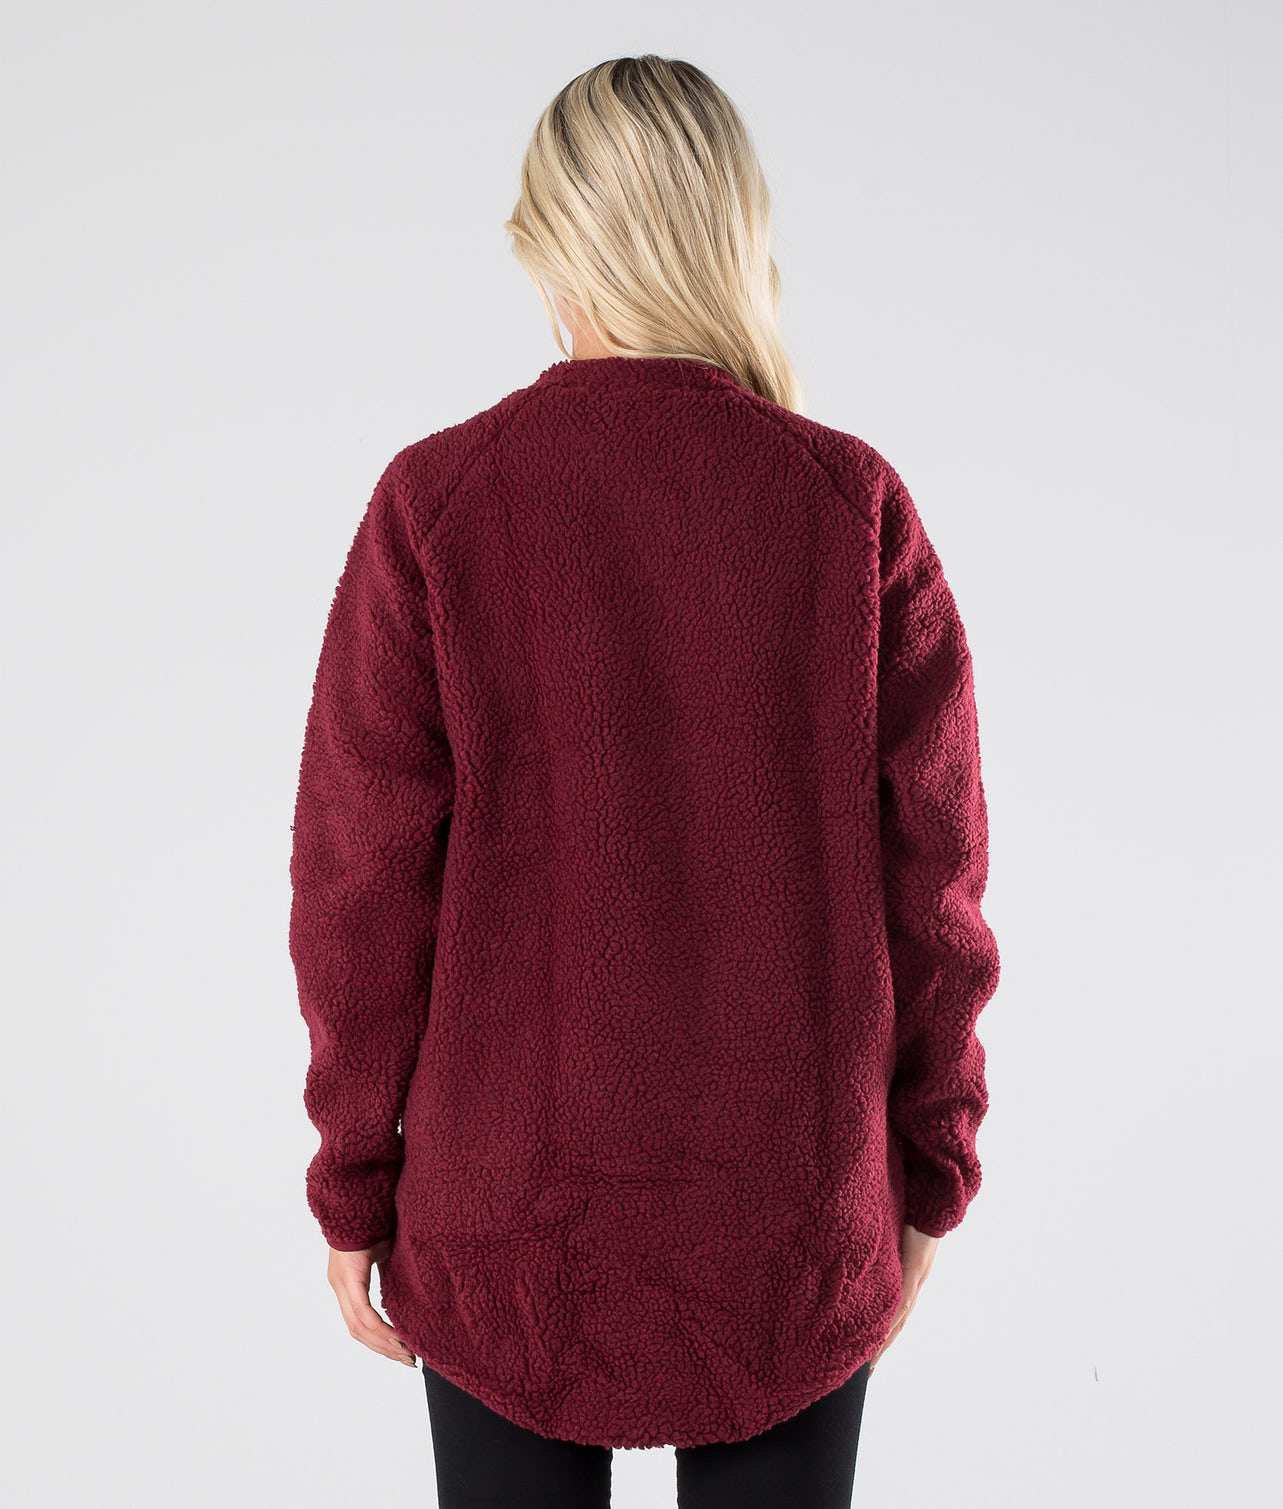 Eivy Redwood Sherpa Jacket Jacka Wine